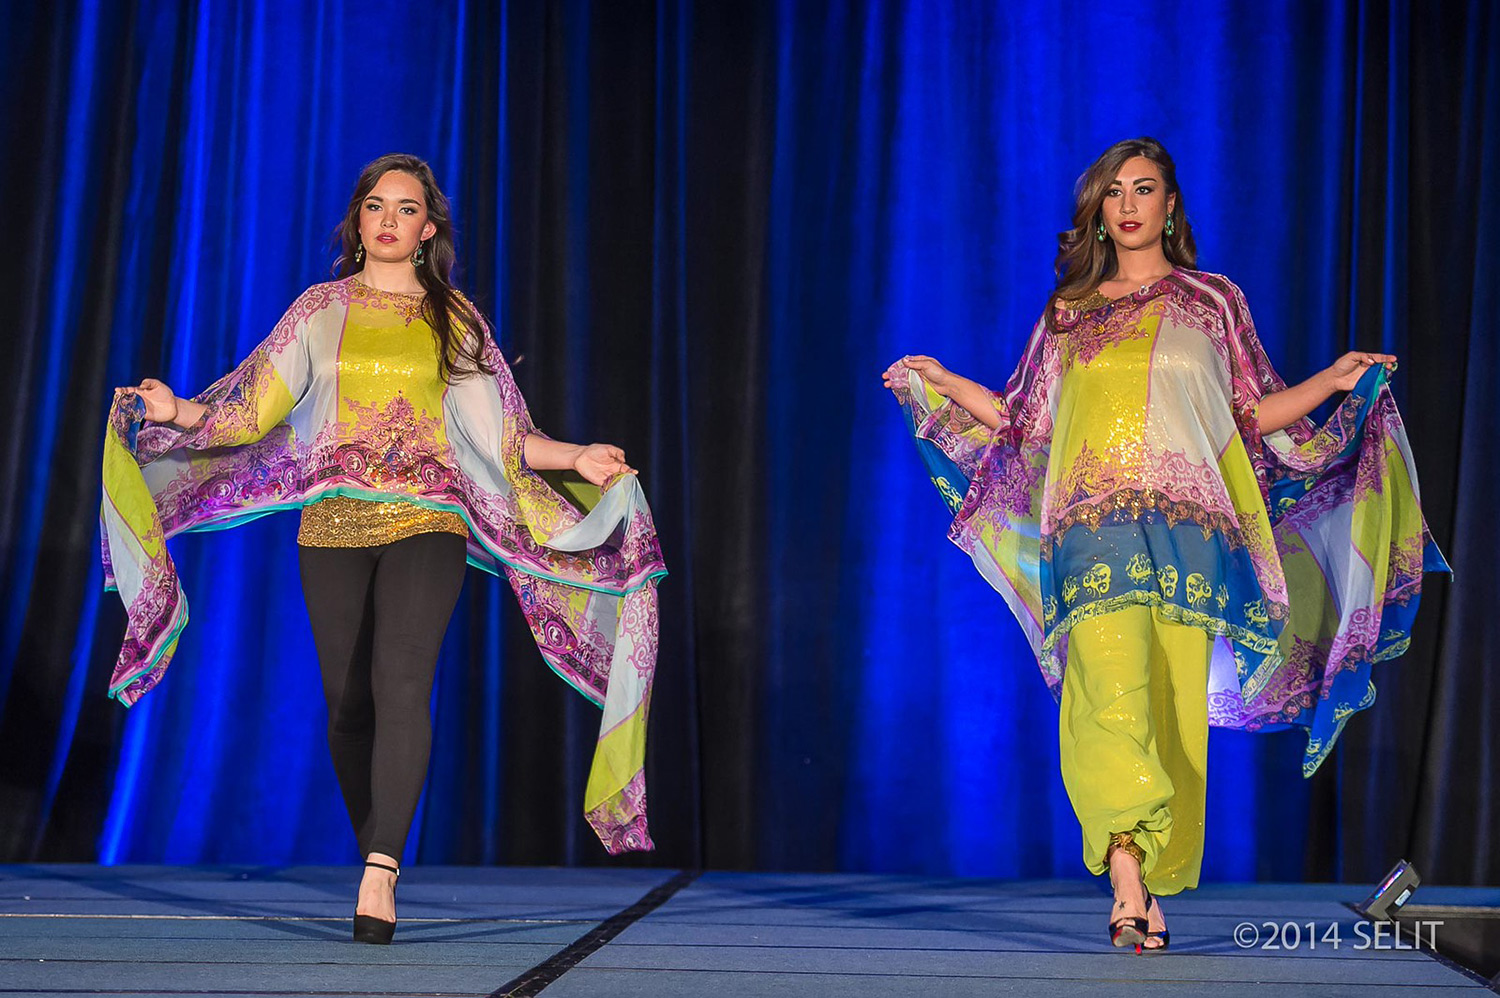 (Right) Multi-color print chiffon boat neck kaftan top and gold sequin camisole paired with chartreuse harem pants. (Left) multi-color print chiffon boat neck kaftan crop top and gold sequin camisole paired with black leggings  (Photo by  Selit Rapadas / UNIT ONE Photography Studio )